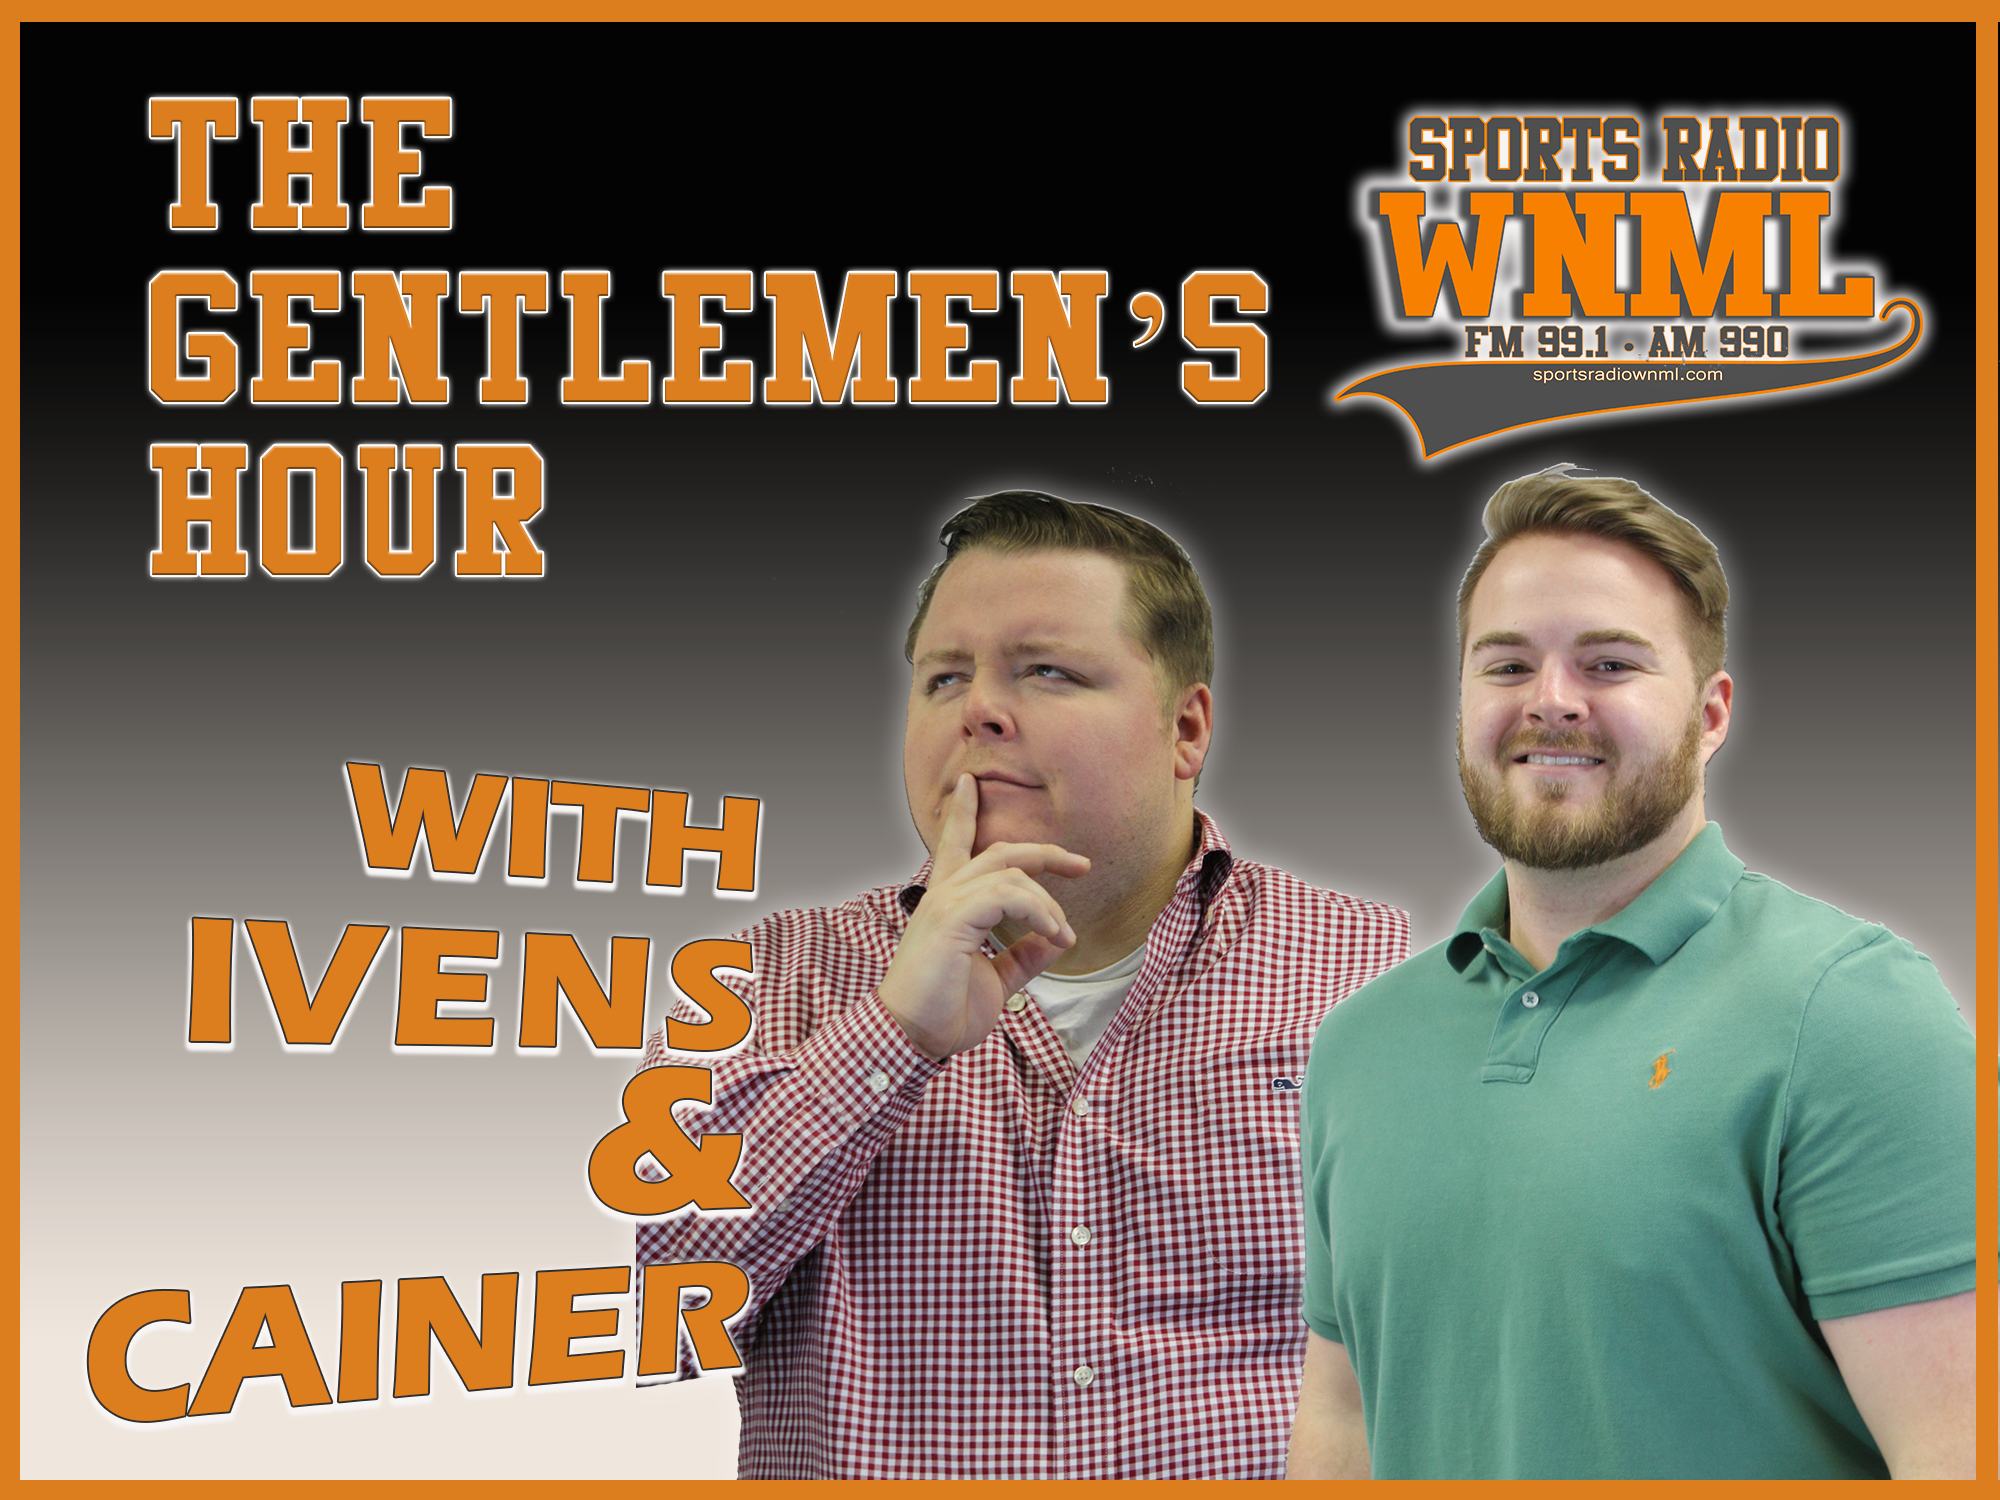 The Gentlemen's Hour Podcast: Episode 34 (6.12.19)